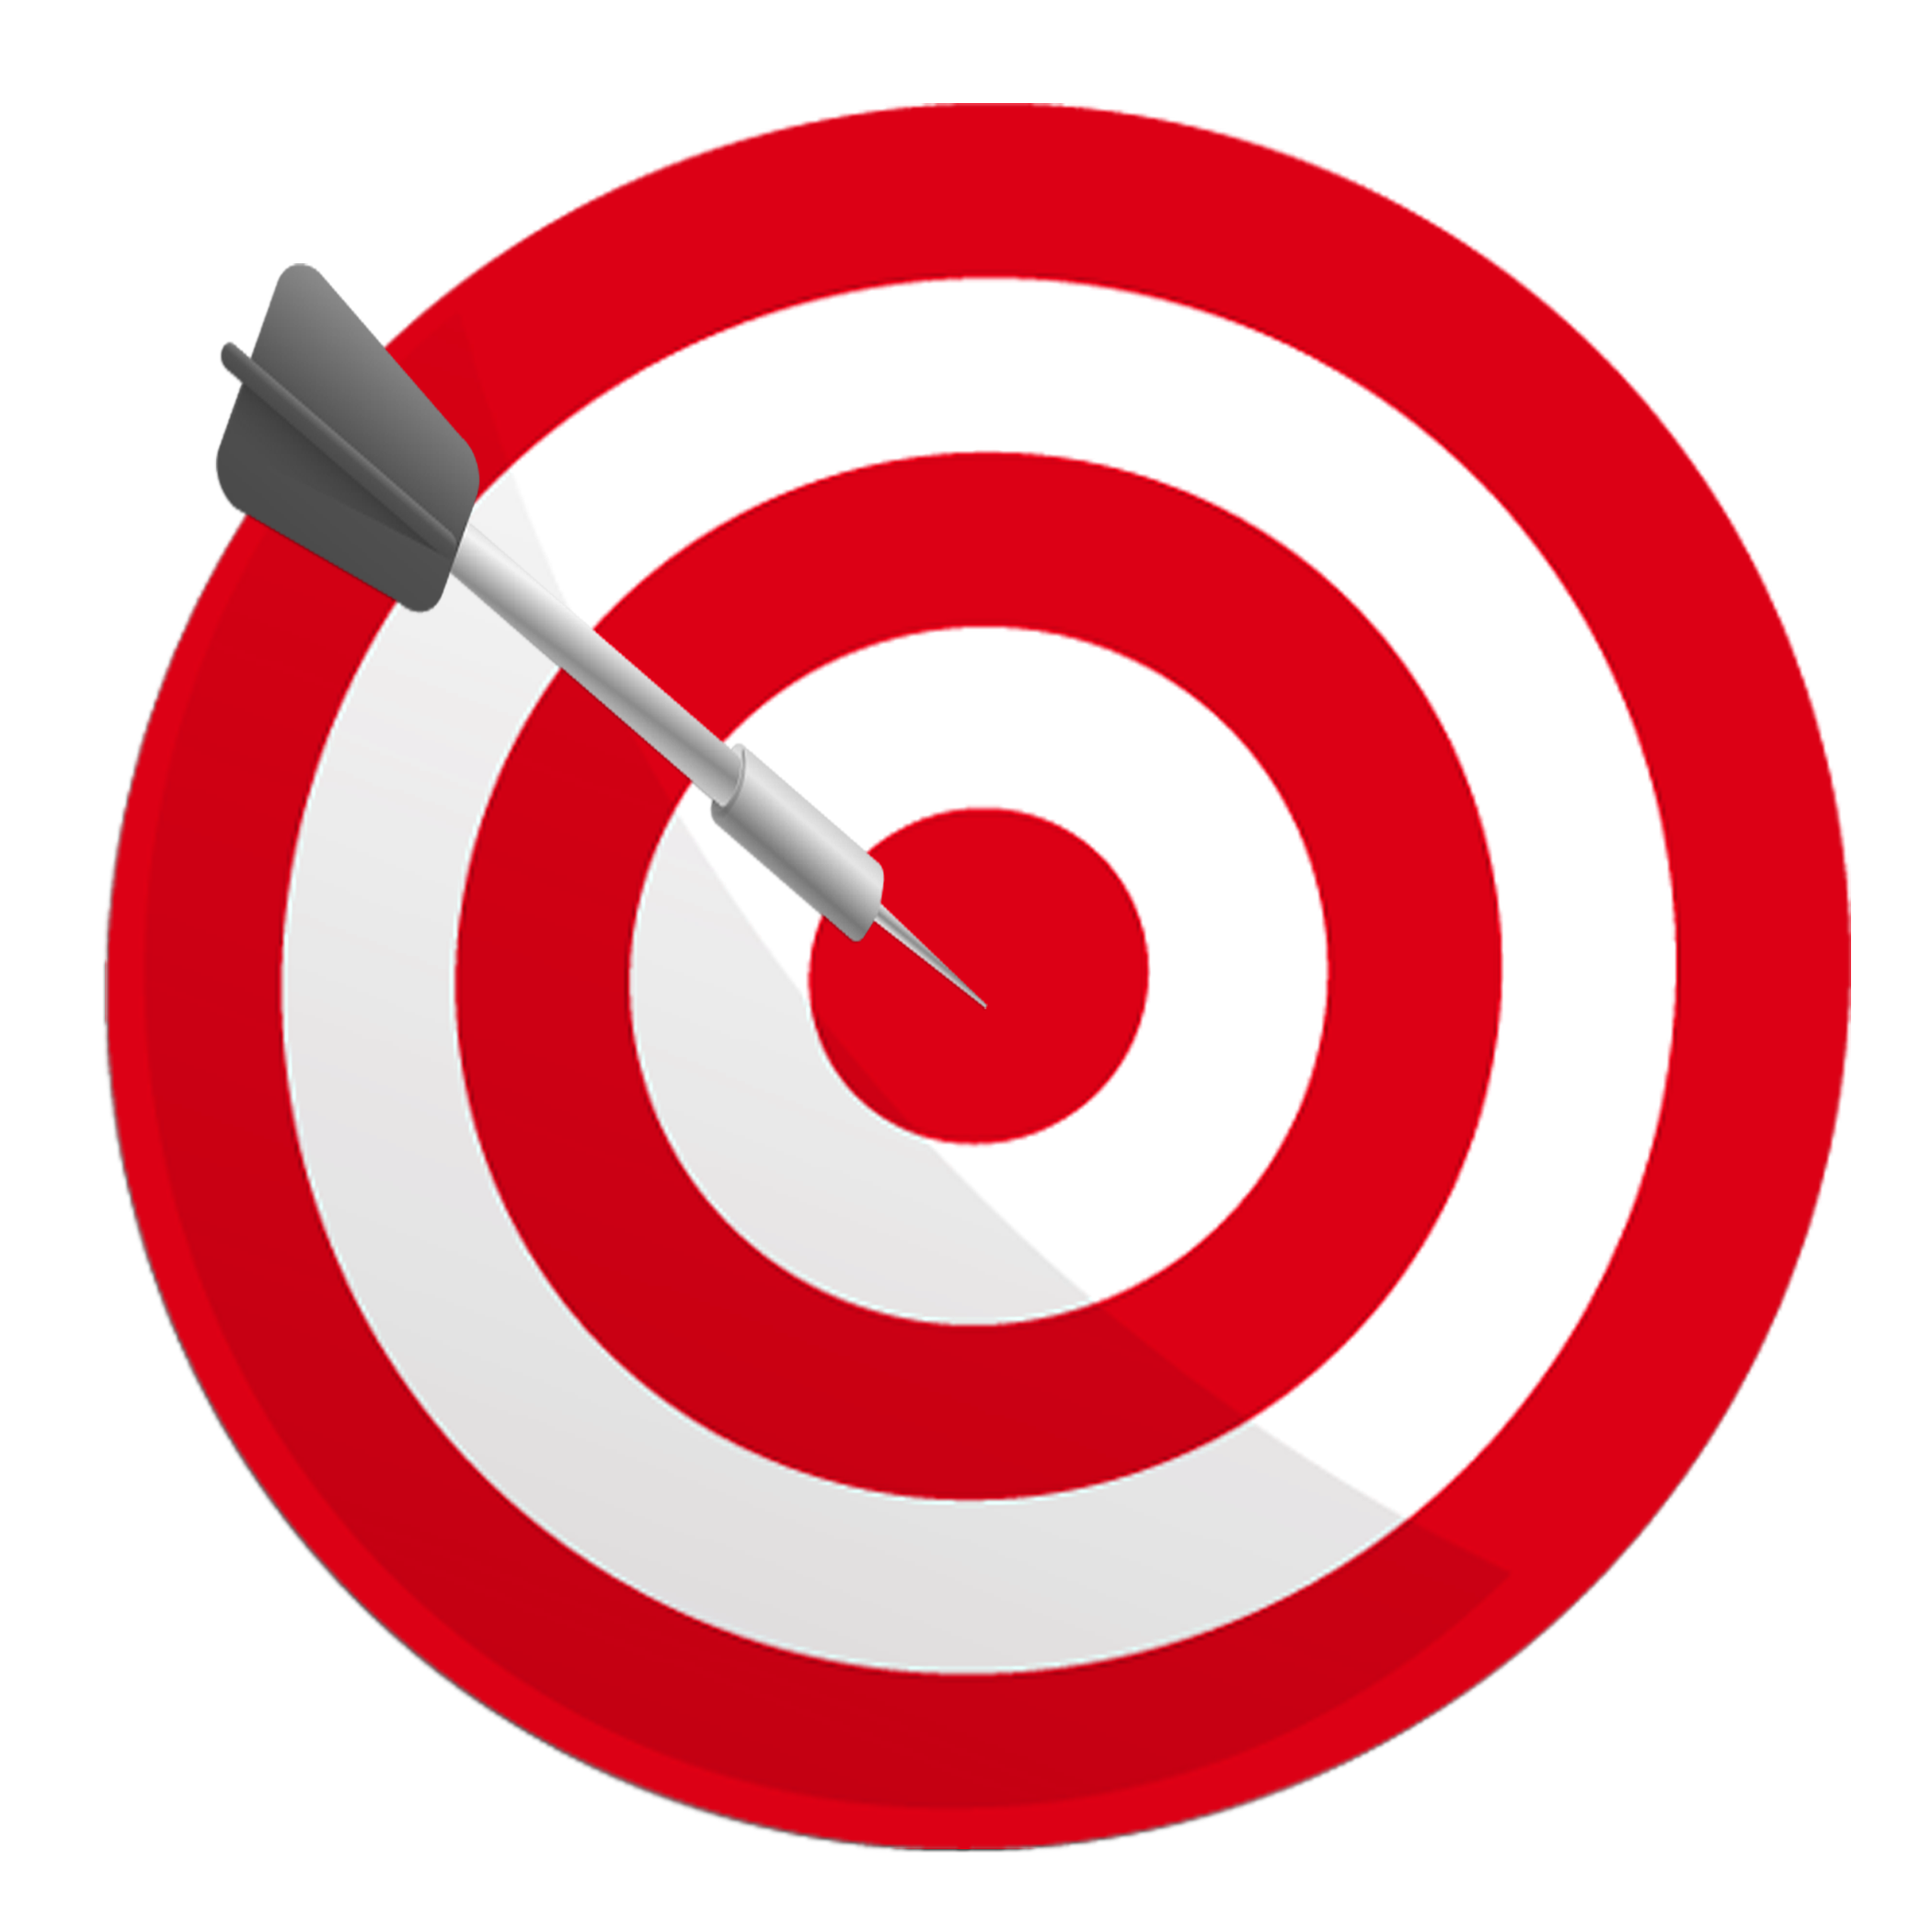 svg transparent library Round Target PNG Image With Transparent Background